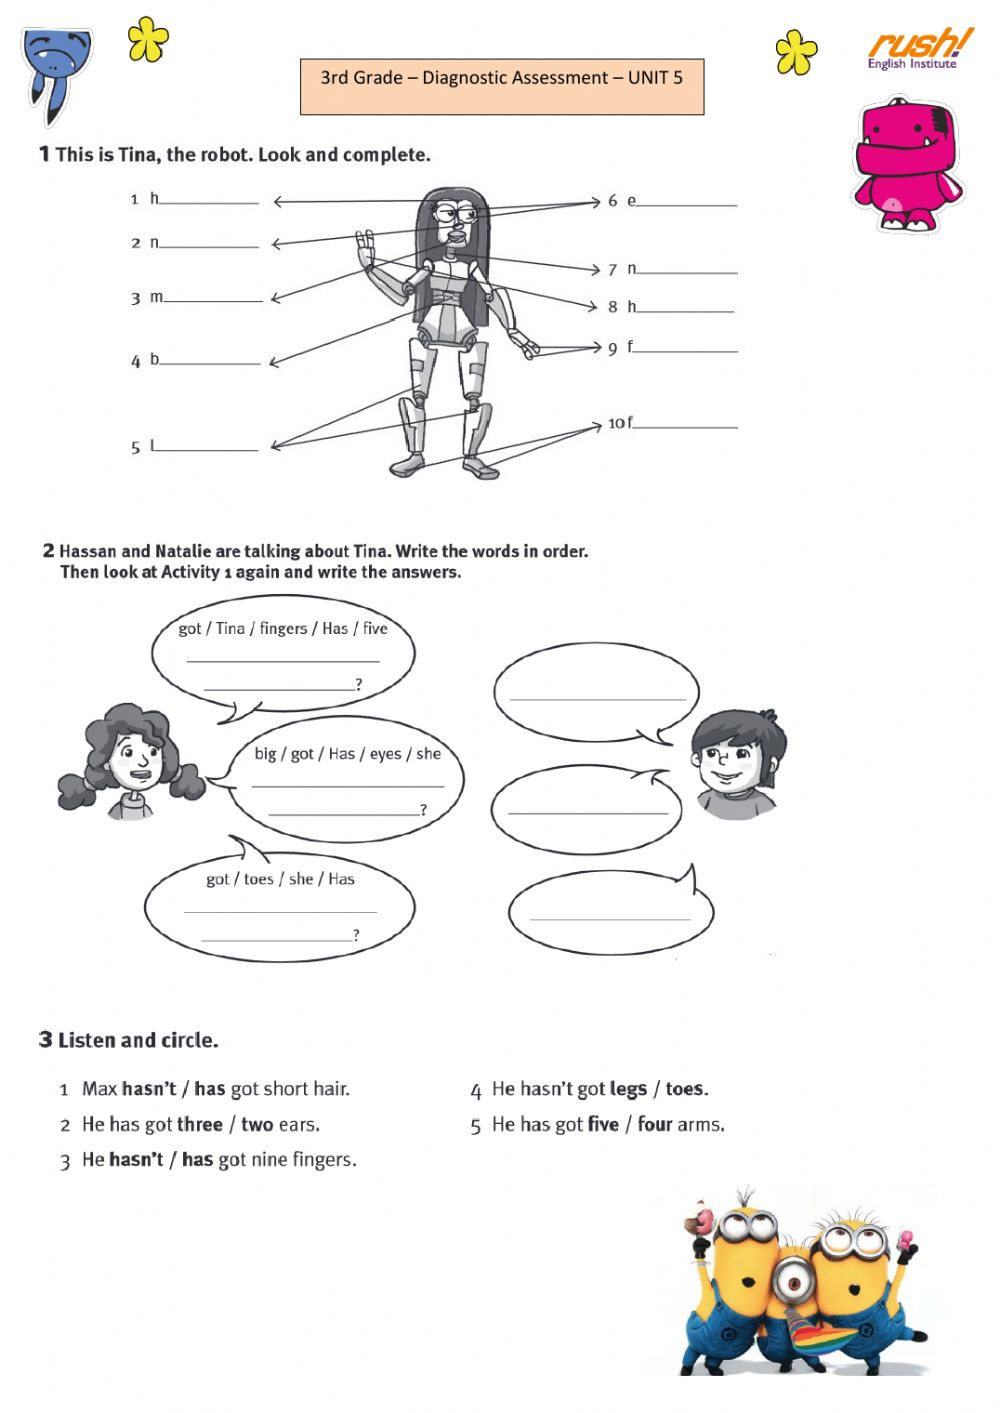 3rd Grade Human Body Worksheets 3rd Grade Diagnostic assessment U5 Interactive Worksheet